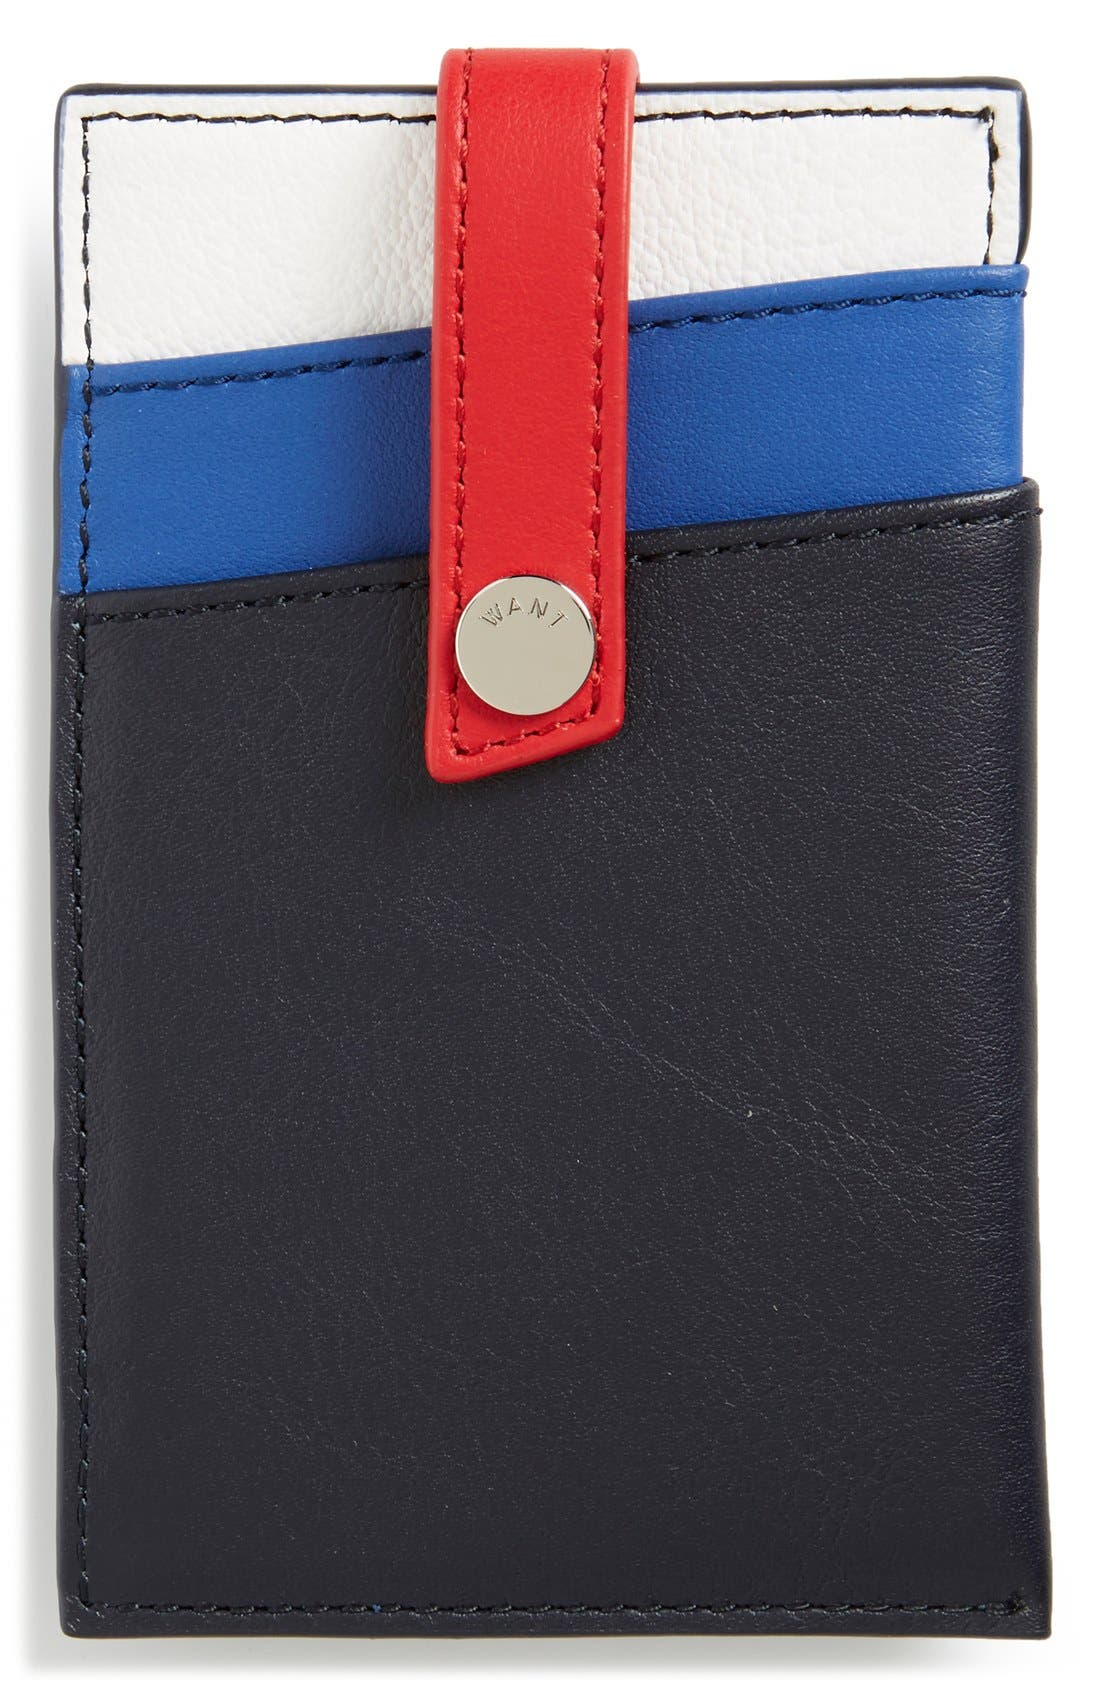 'Kennedy' Leather Money Clip Card Case,                             Main thumbnail 5, color,